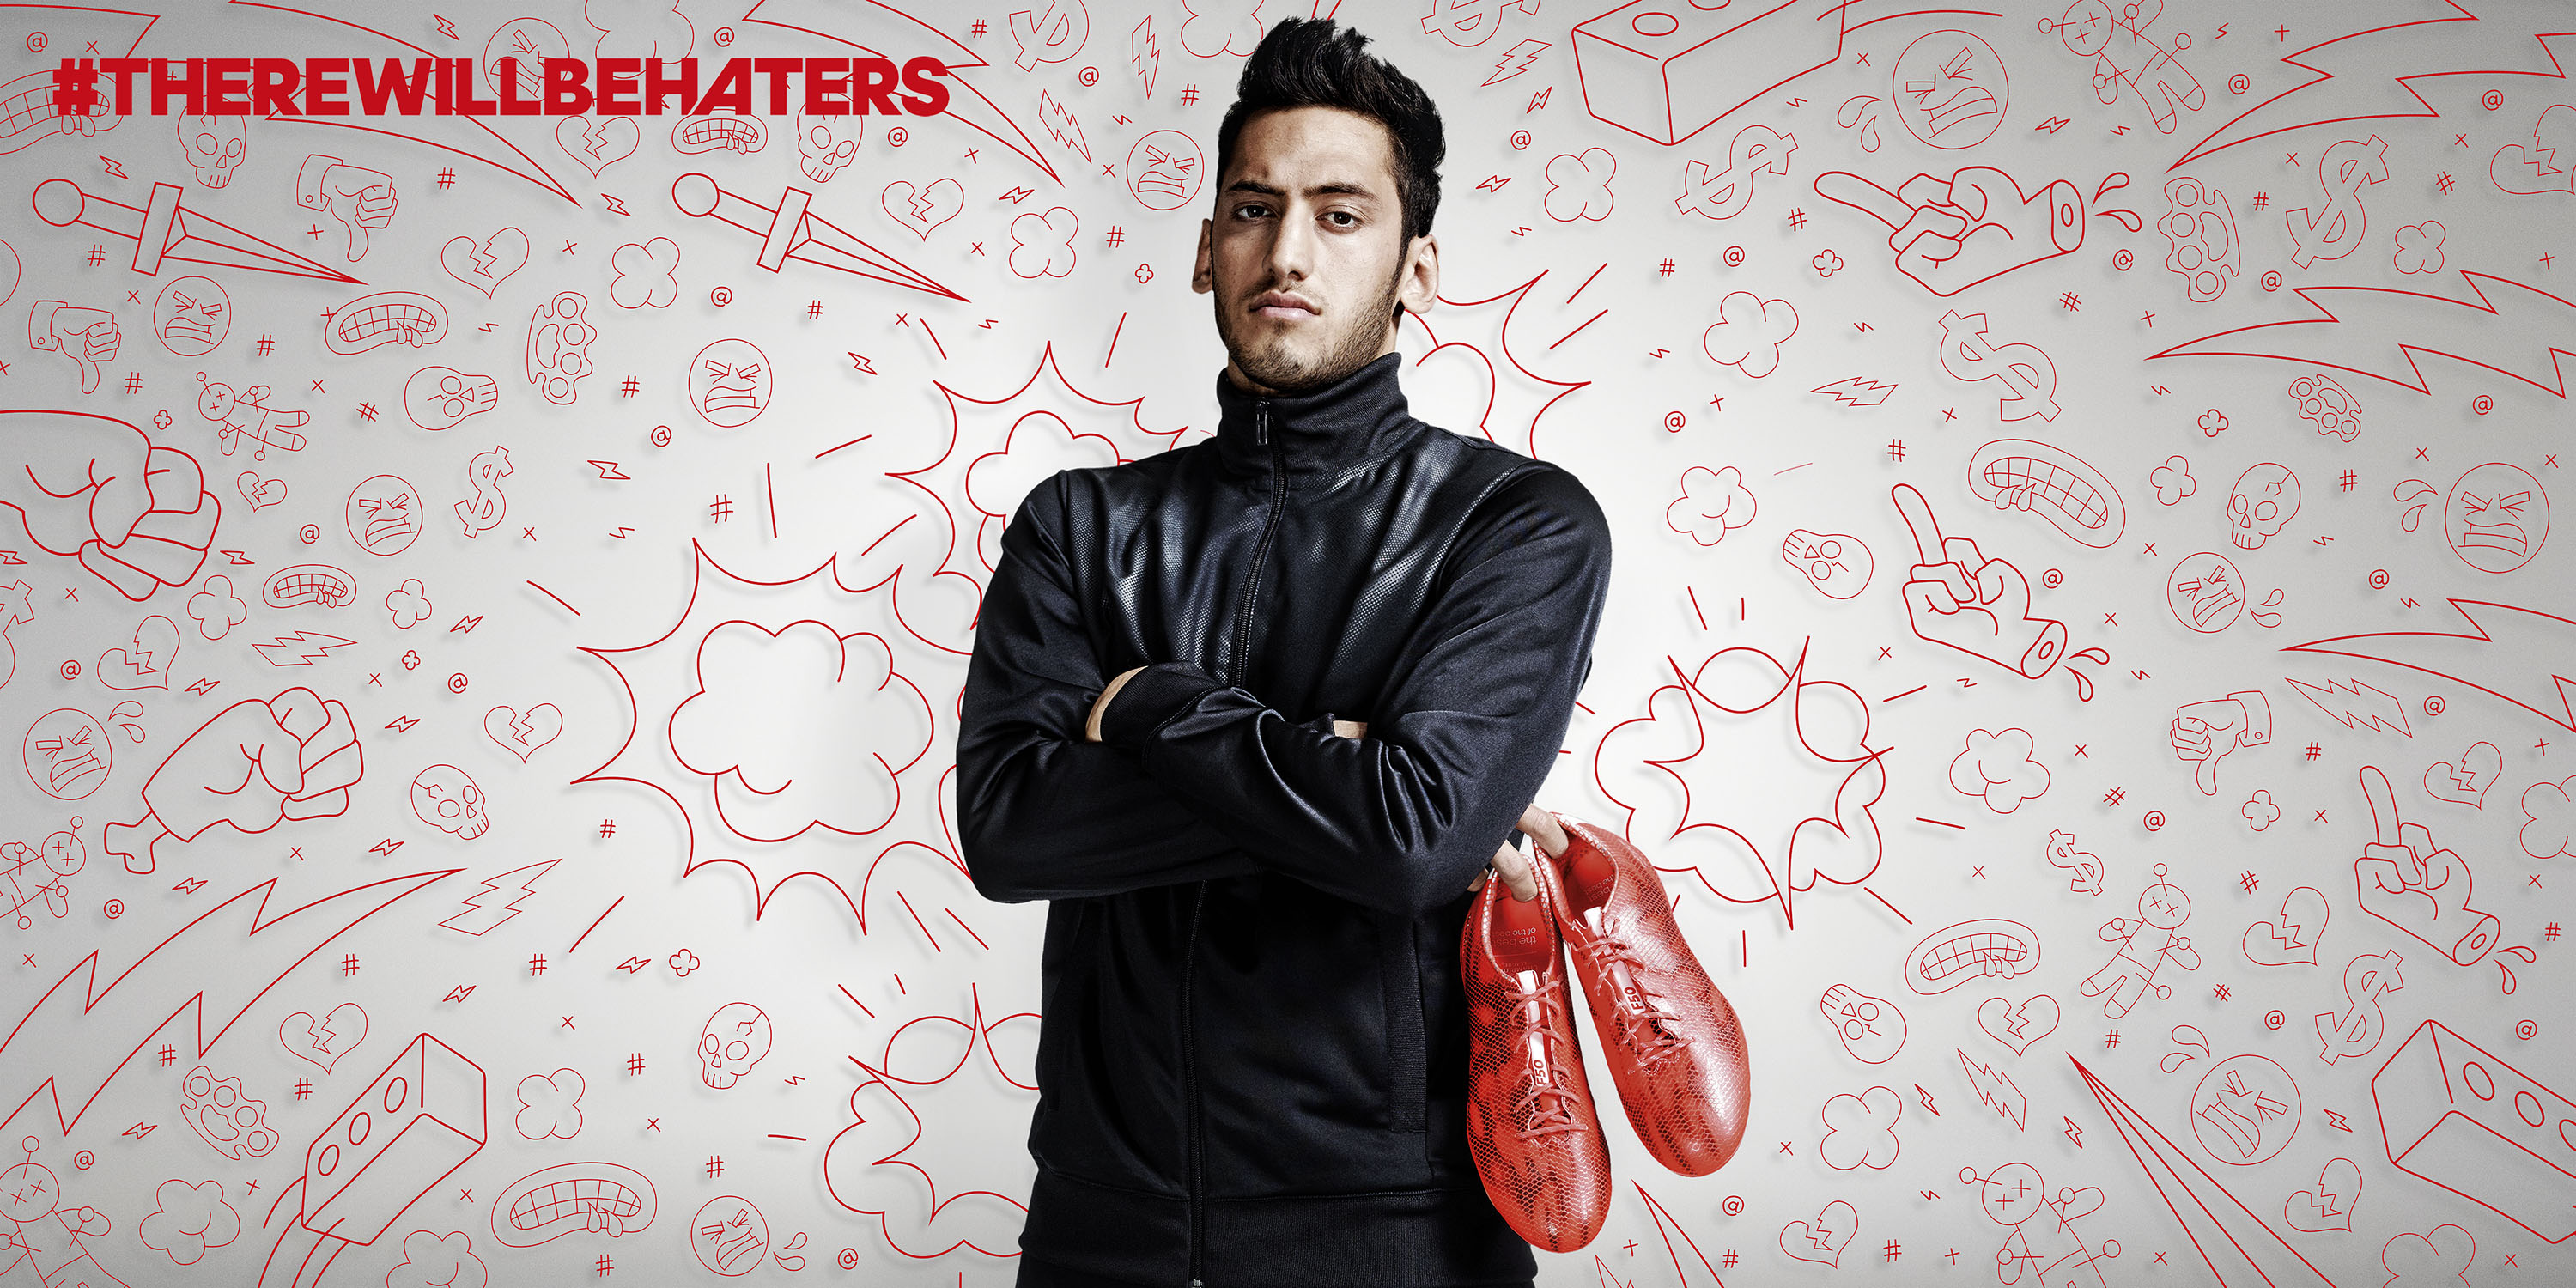 #There will be Haters Campaign, football,Hakan Çalhanoğlu, Detlef Schneider Photography